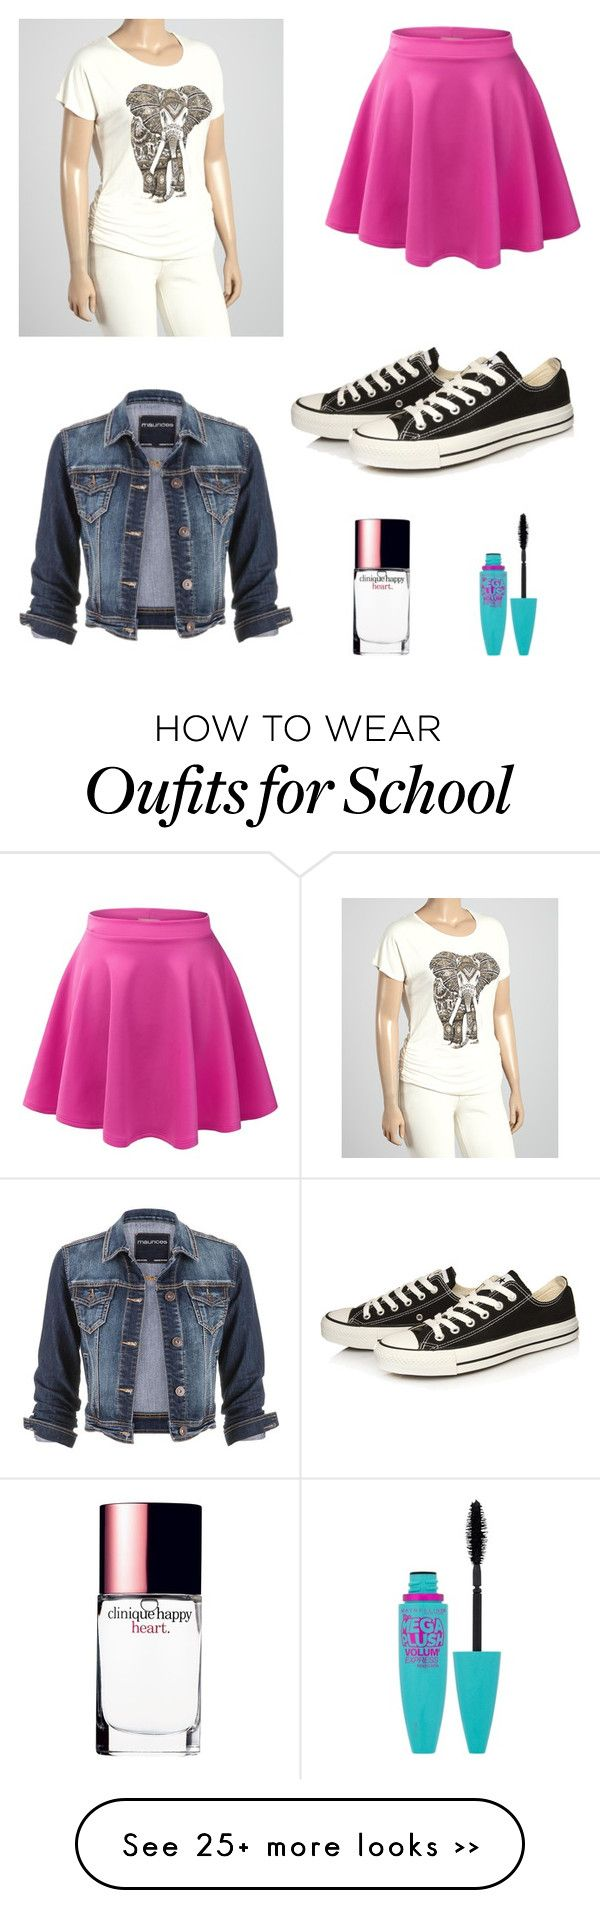 """School outfit"" by cici4896 on Polyvore"